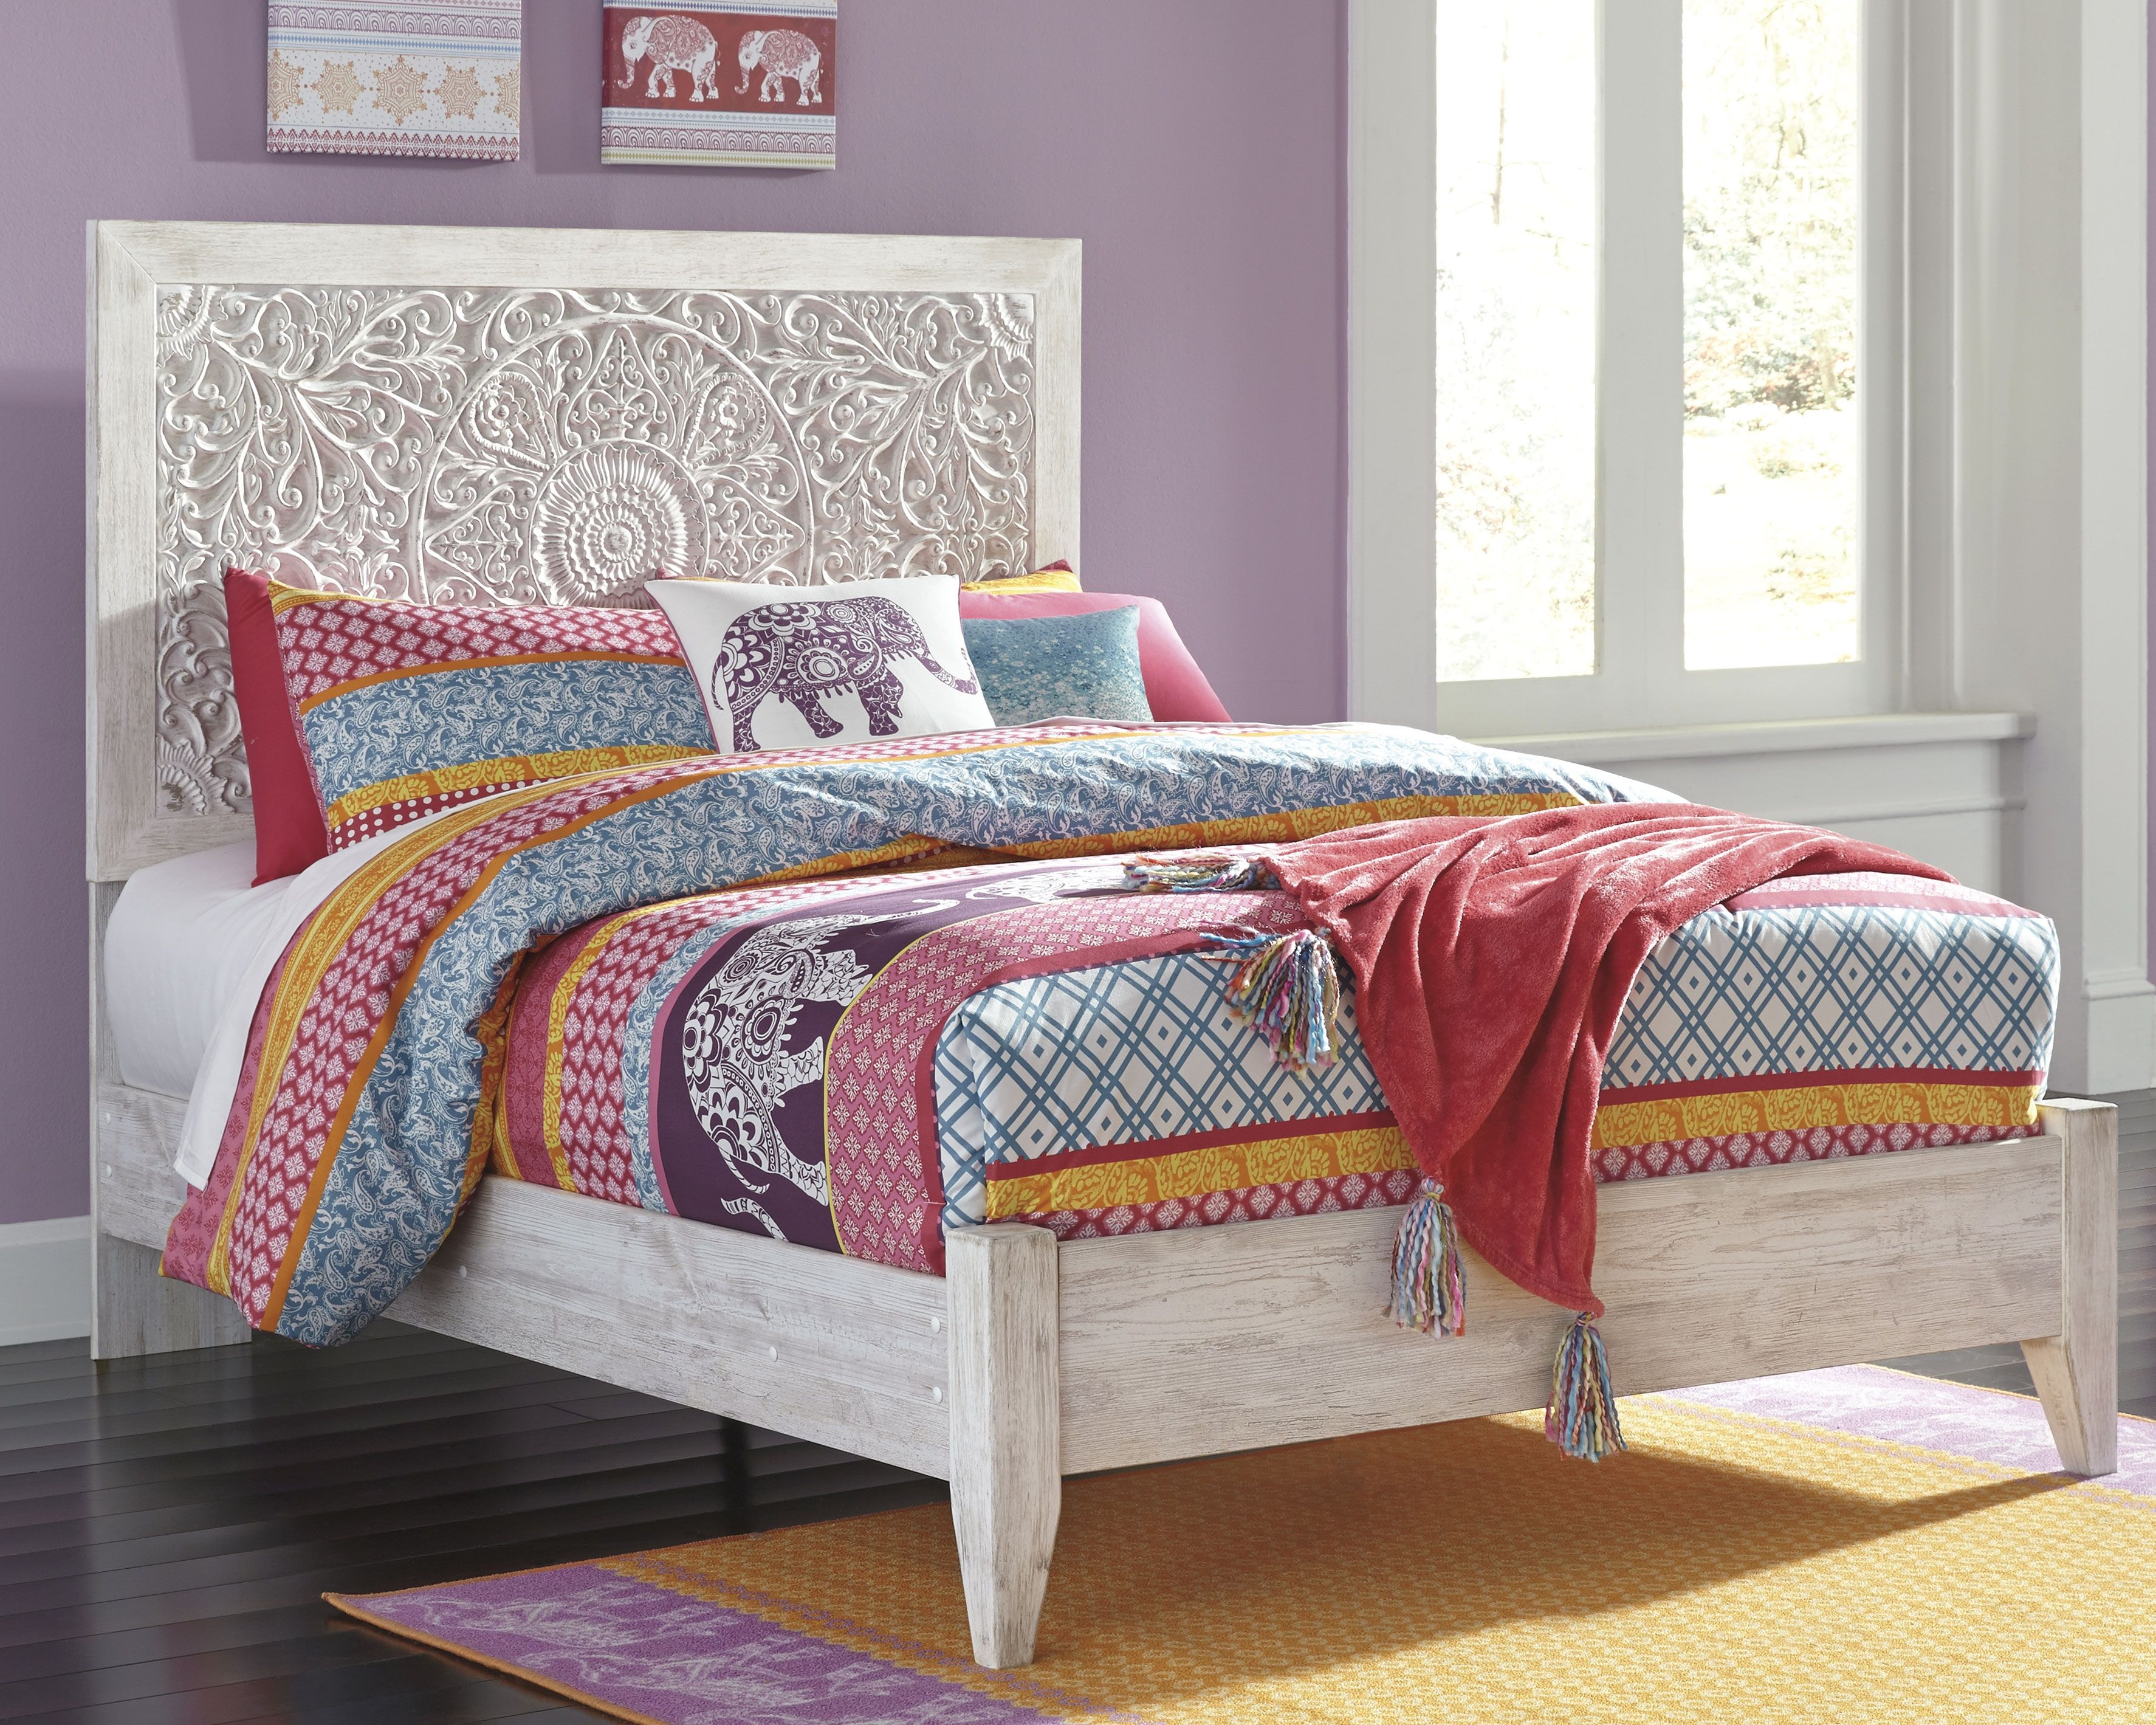 Paxberry Twin Panel Bed, White Wash Twin bedroom